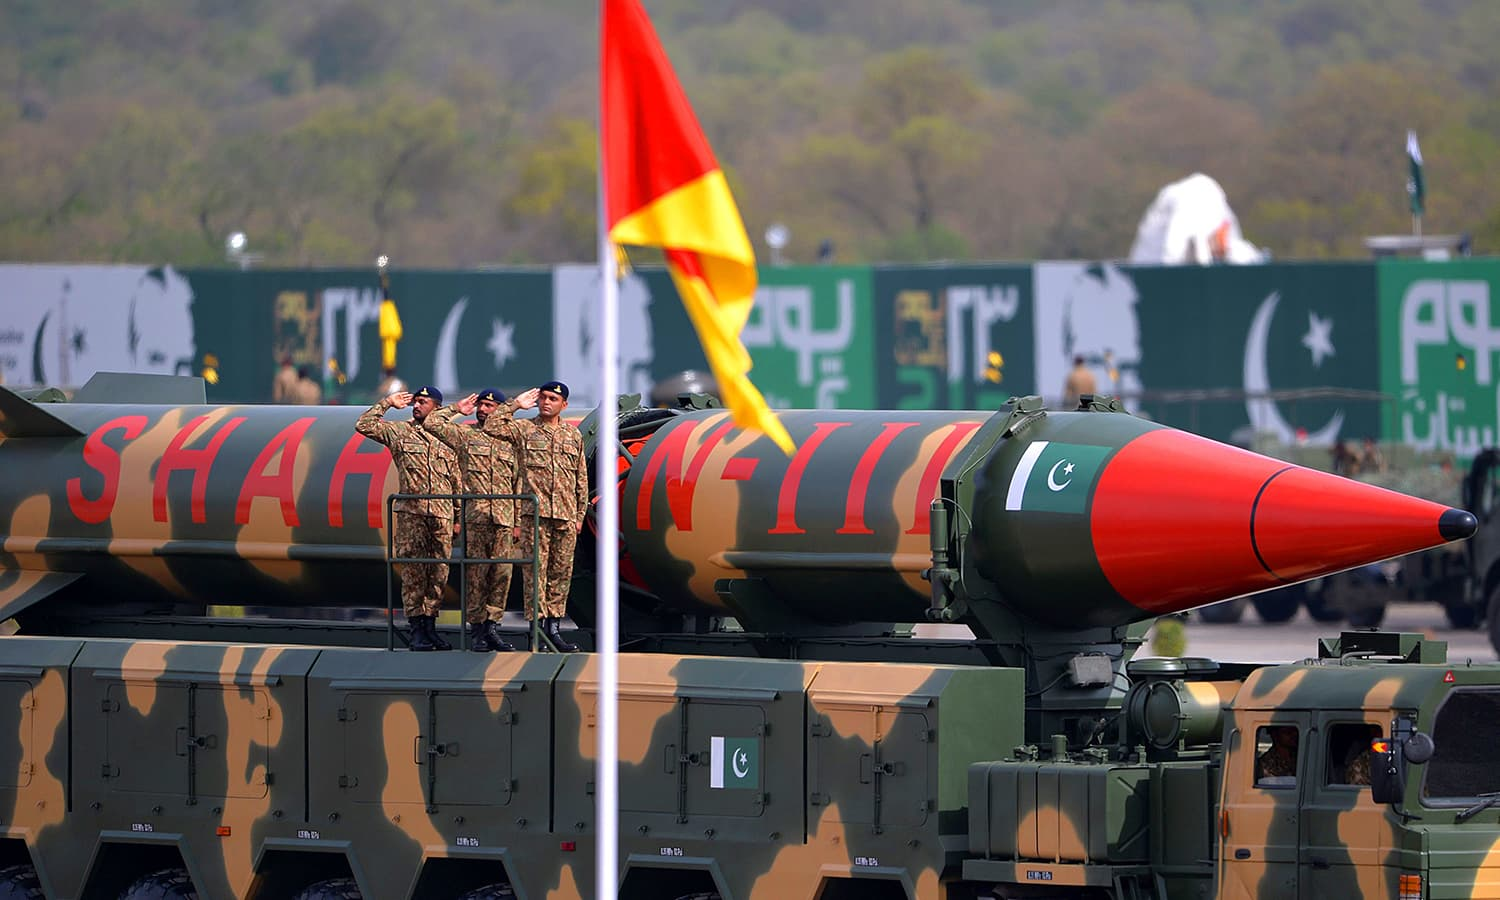 Army soldiers salute as they travel on a vehicle carrying long-range ballistic missile Shaheen III during the Pakistan Day military parade. ─ AFP